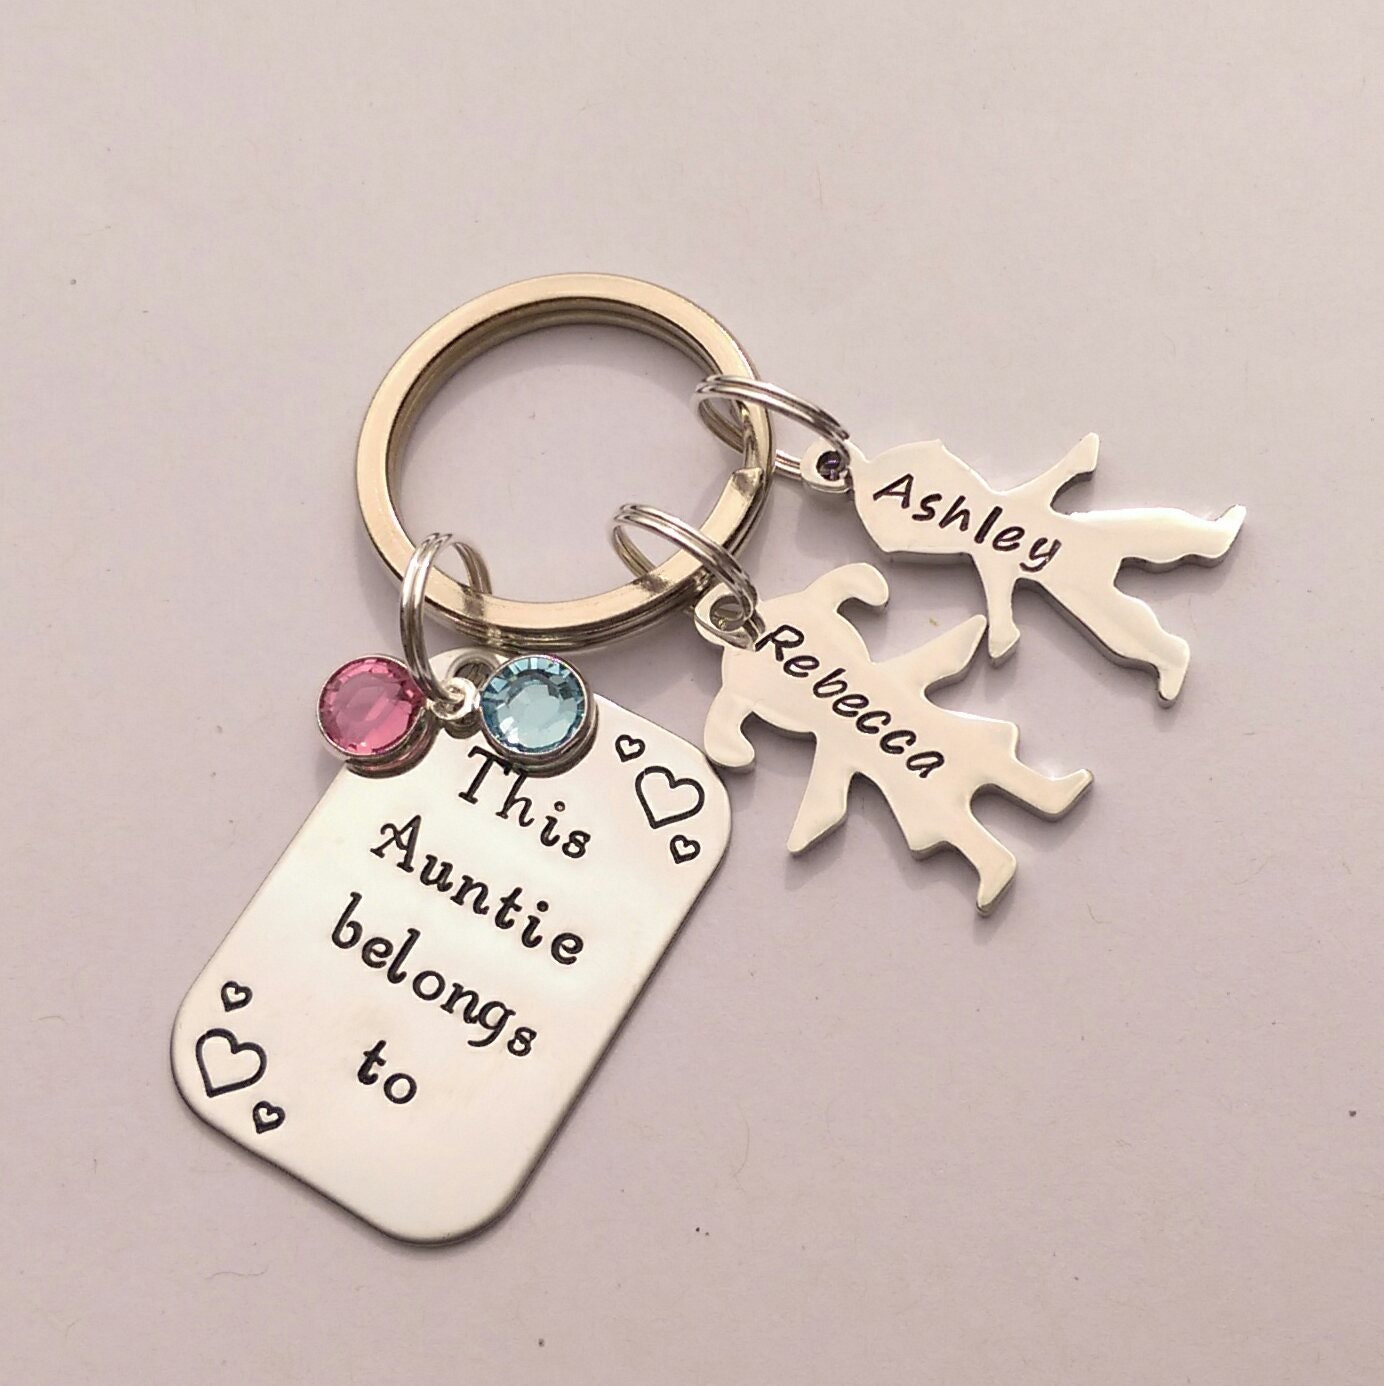 Personalised Auntie gift - personalized Auntie keychain gift - This Aunt Auntie belongs to - personalised Auntie keyring gift